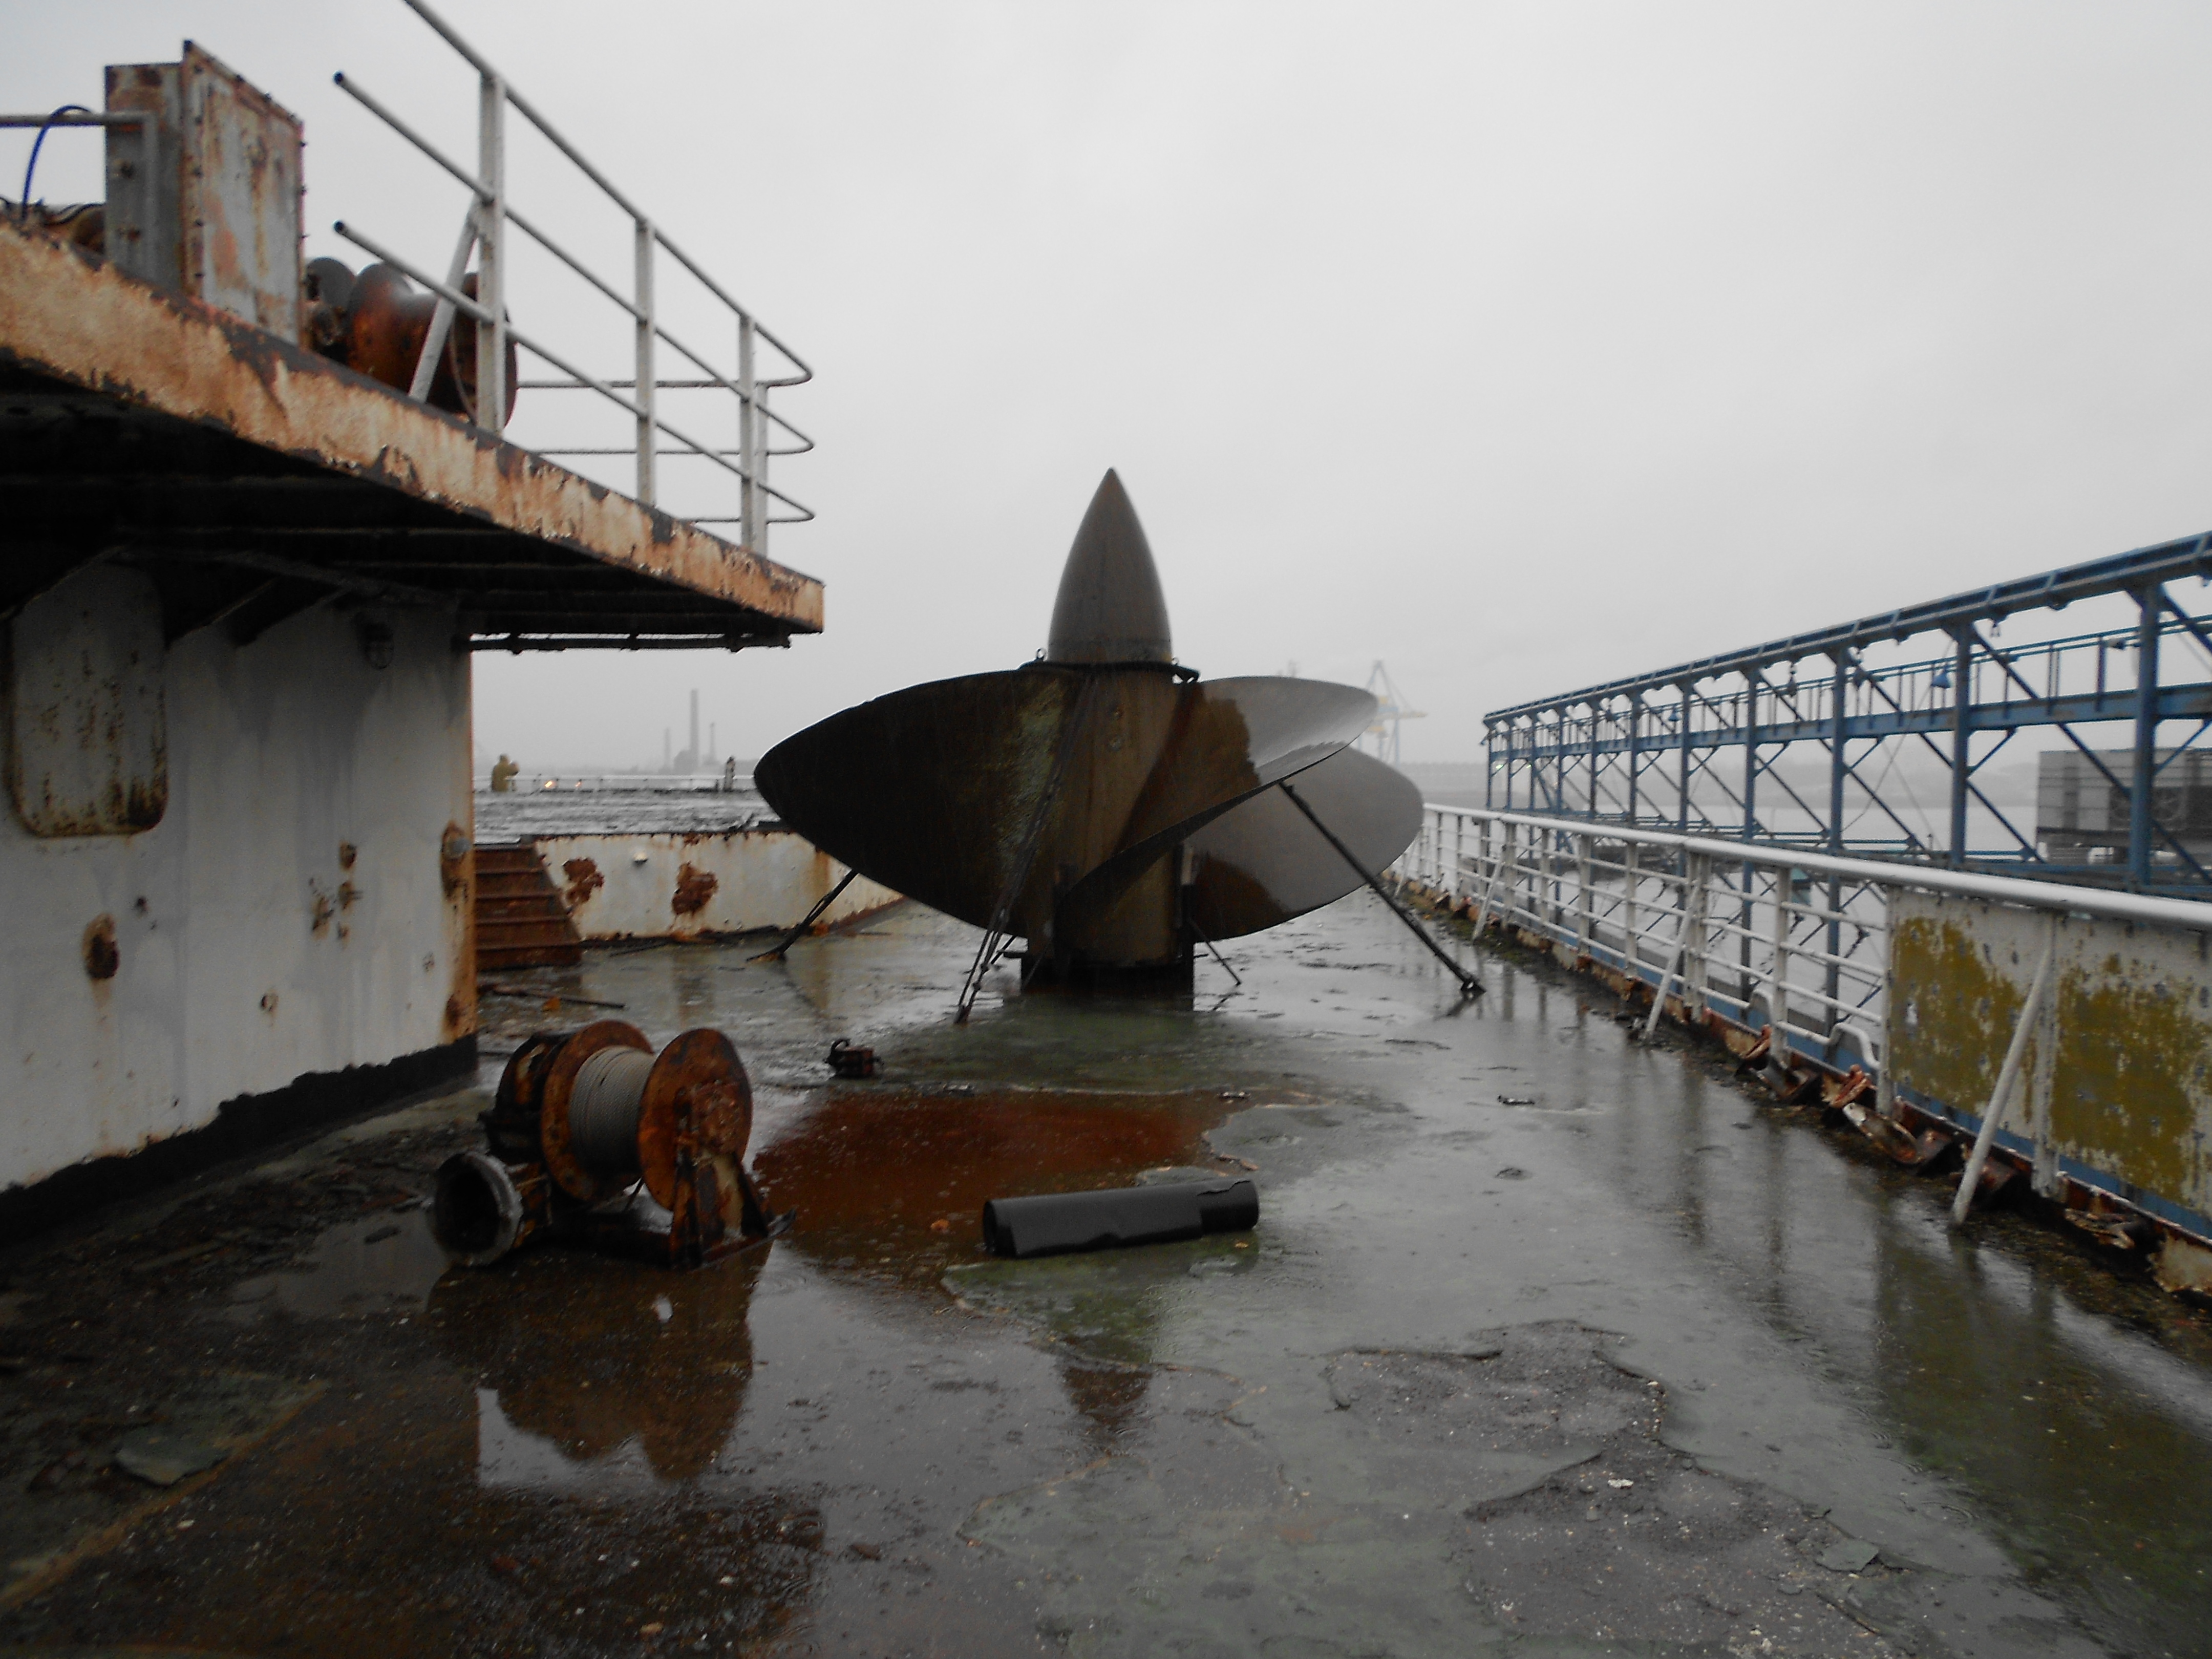 The ship had four bronze alloy propellers. Copyright photo: Steven B. Ujifusa